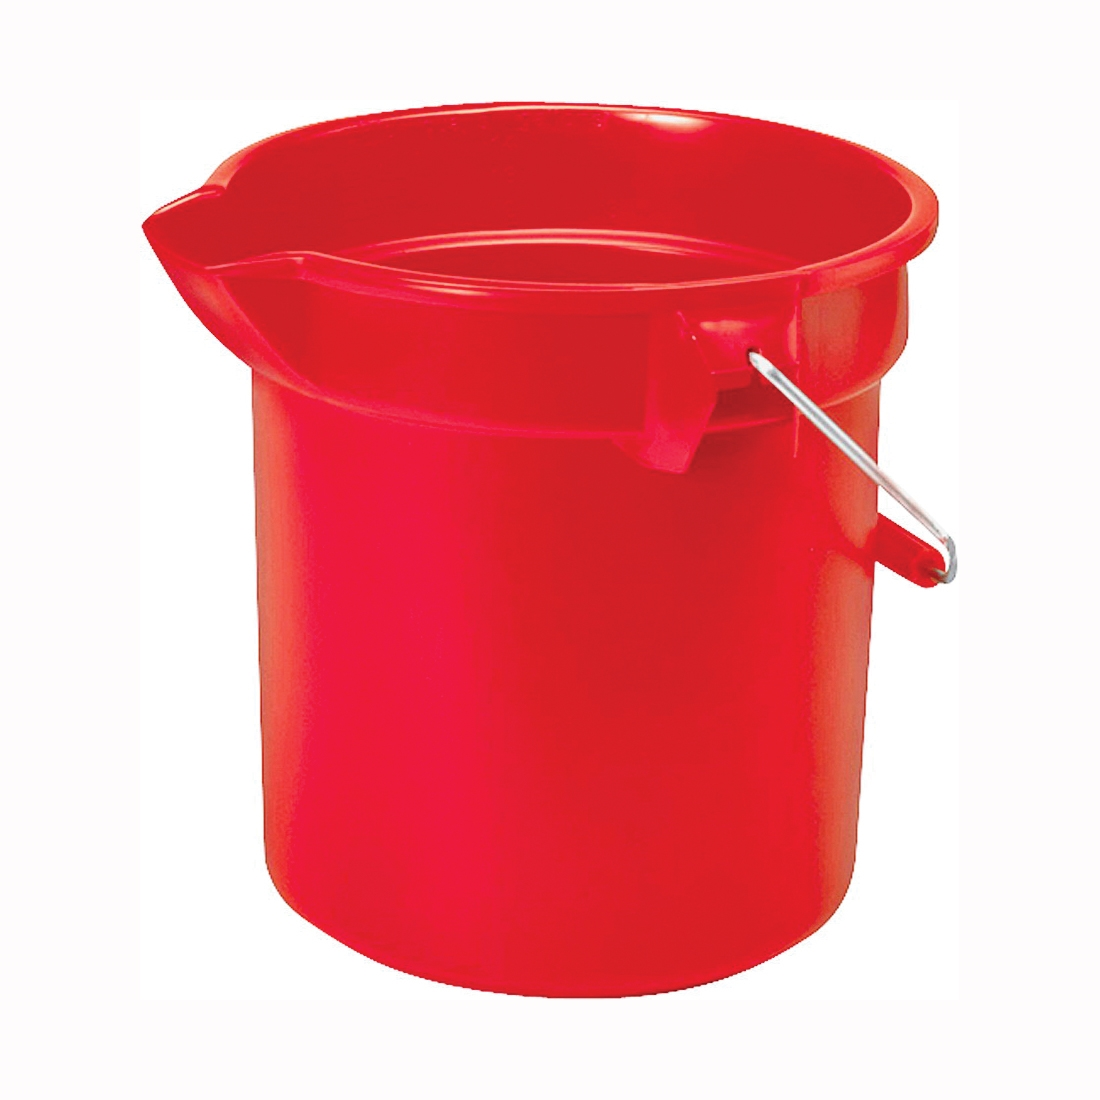 Picture of Rubbermaid Professional Plus 296300RED Bucket, 10 qt Capacity, 10-1/2 in Dia, Plastic, Red